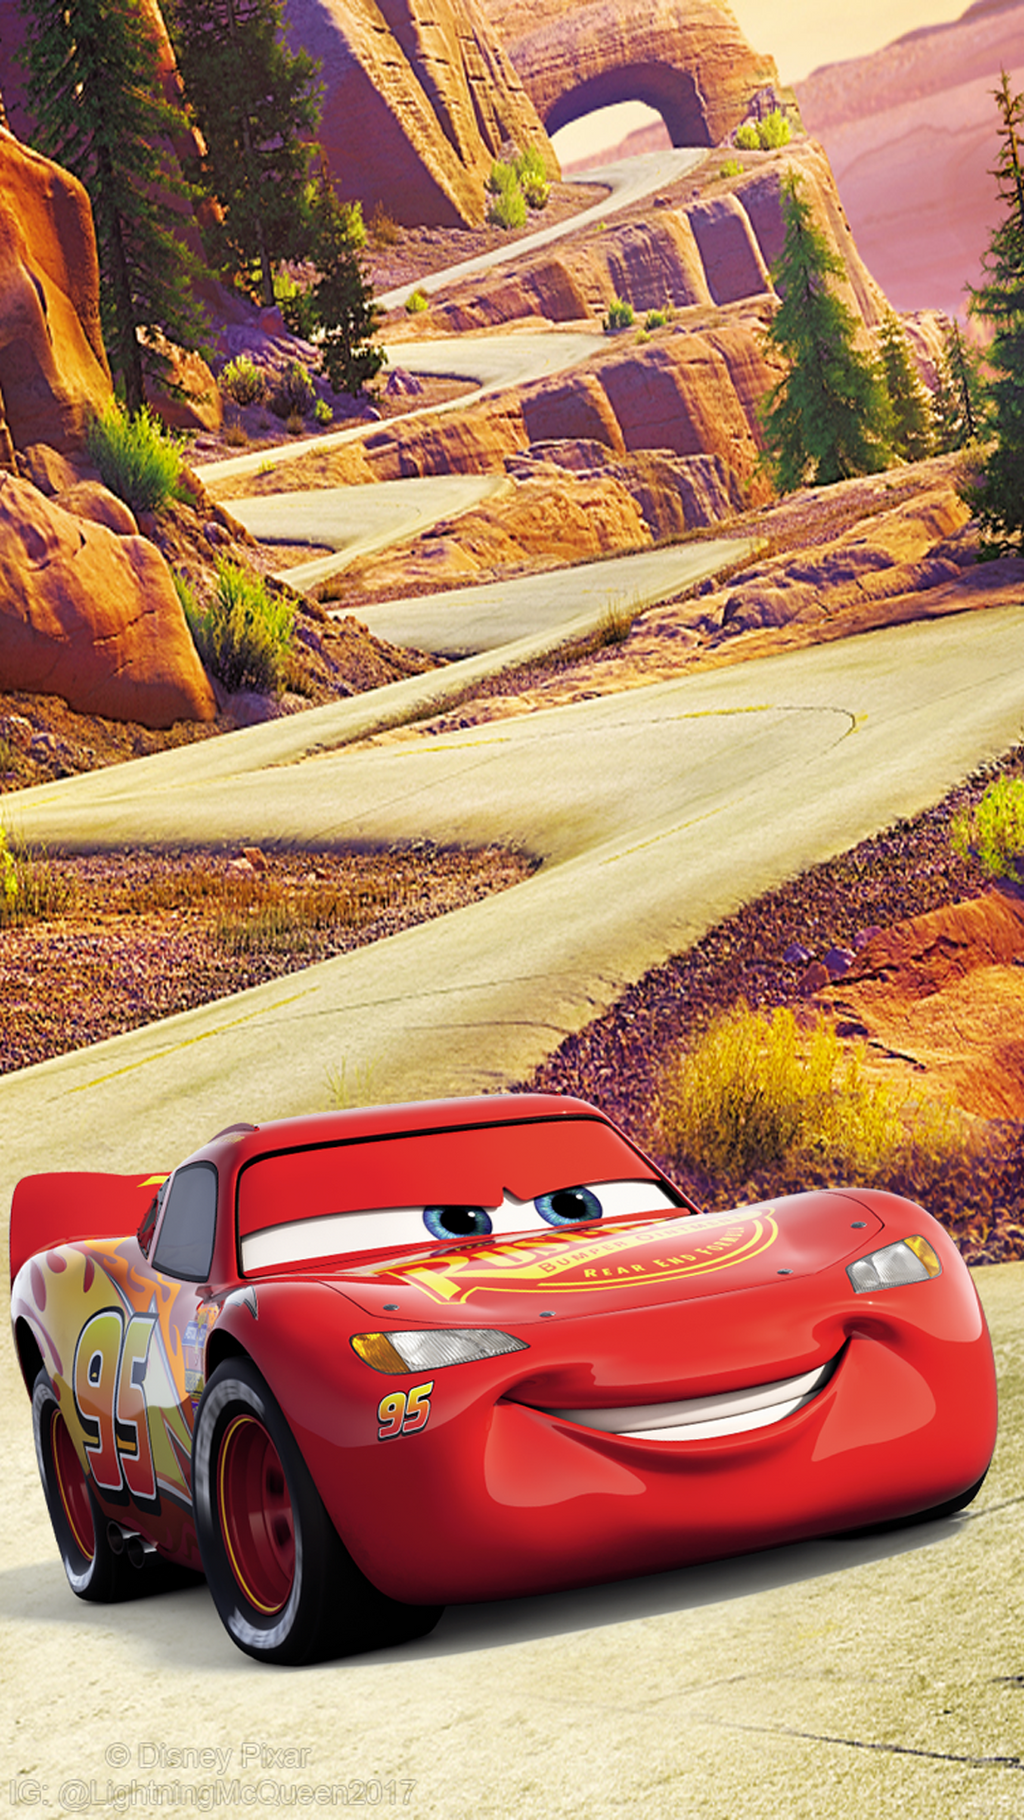 LightningMcQueen2017 Cars 3 Lightning McQueen Wallpaper 1080x1920 By